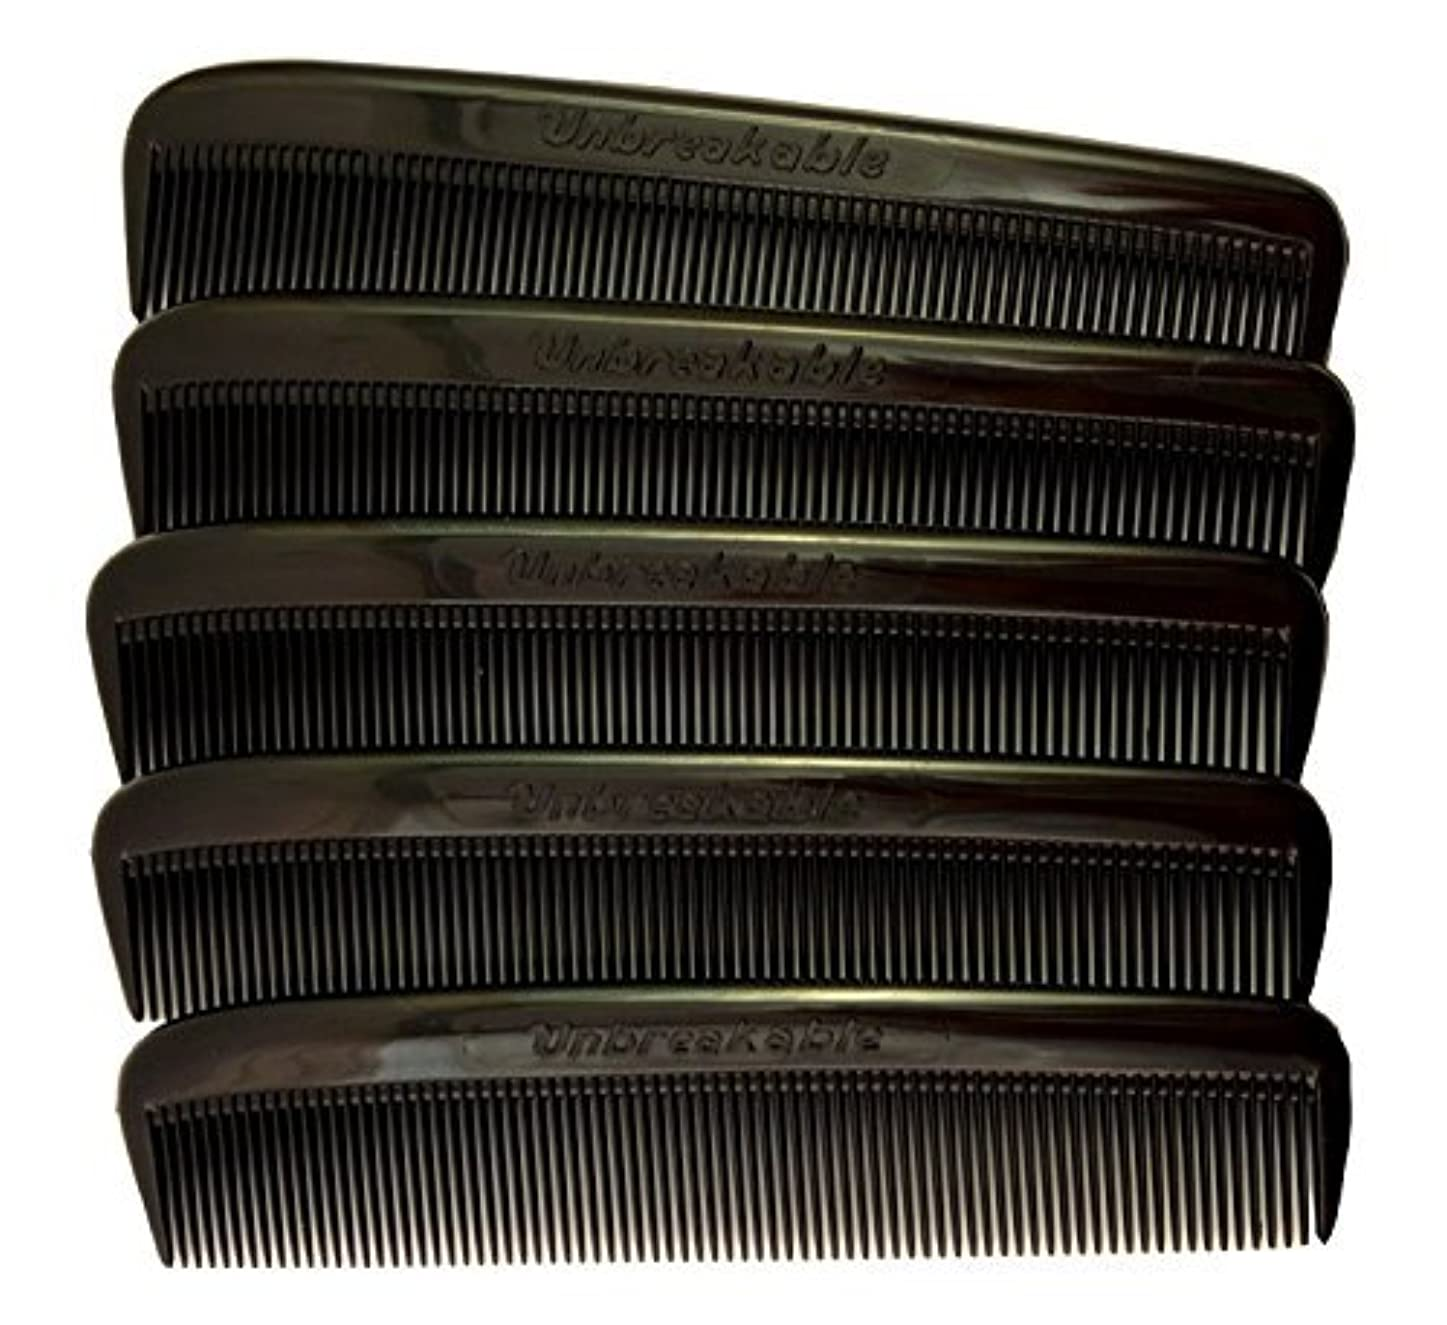 Set of 25 Clipper-mate Pocket Combs 5